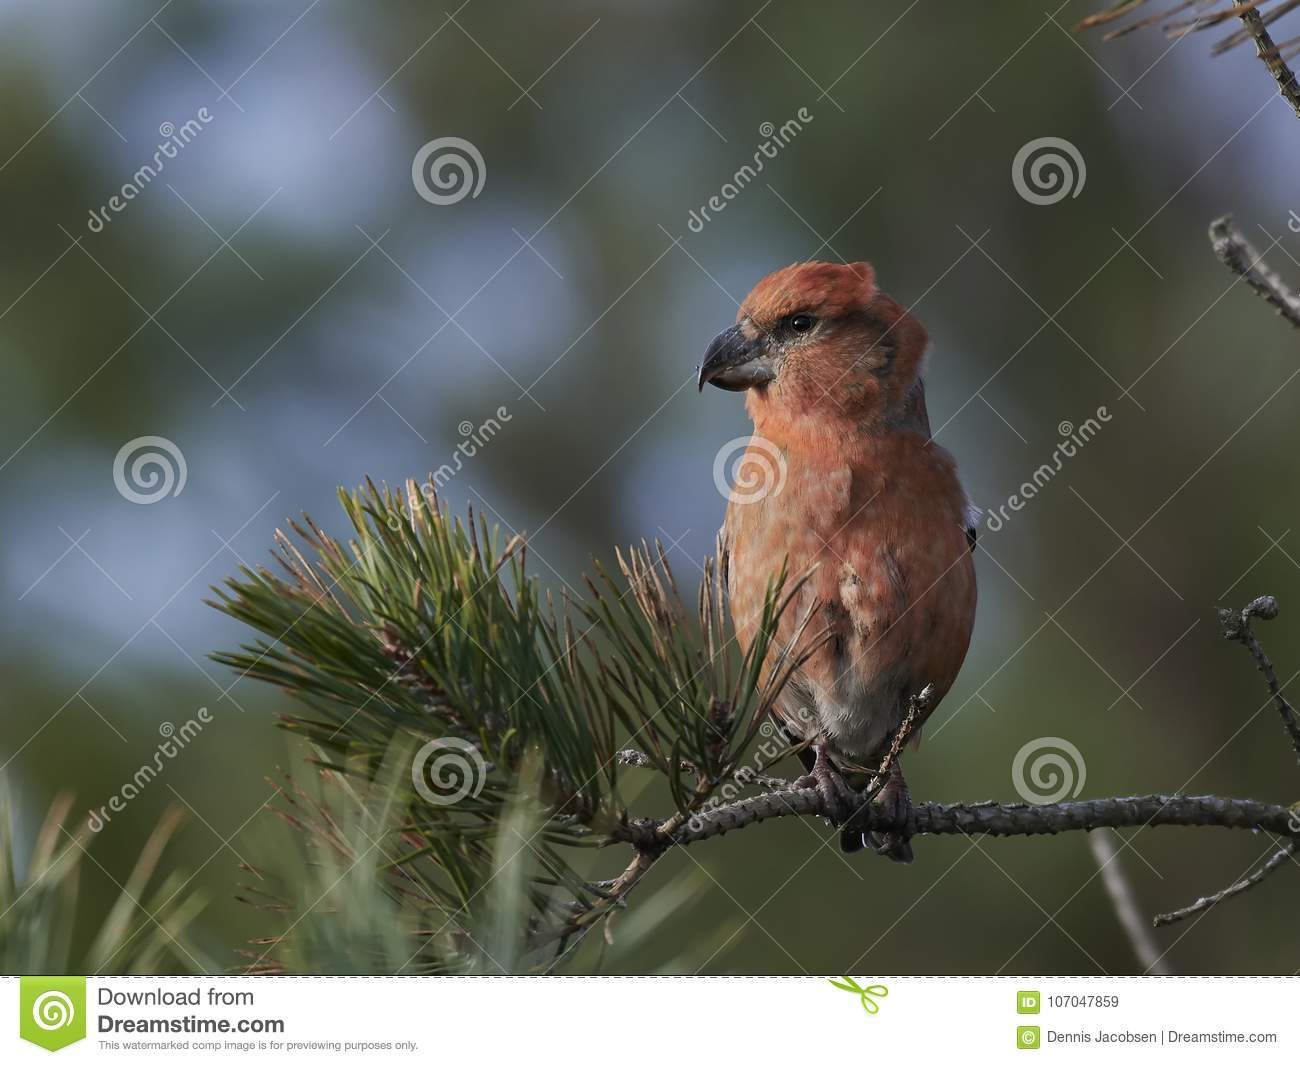 Parrot crossbill Loxia pytyopsittacus